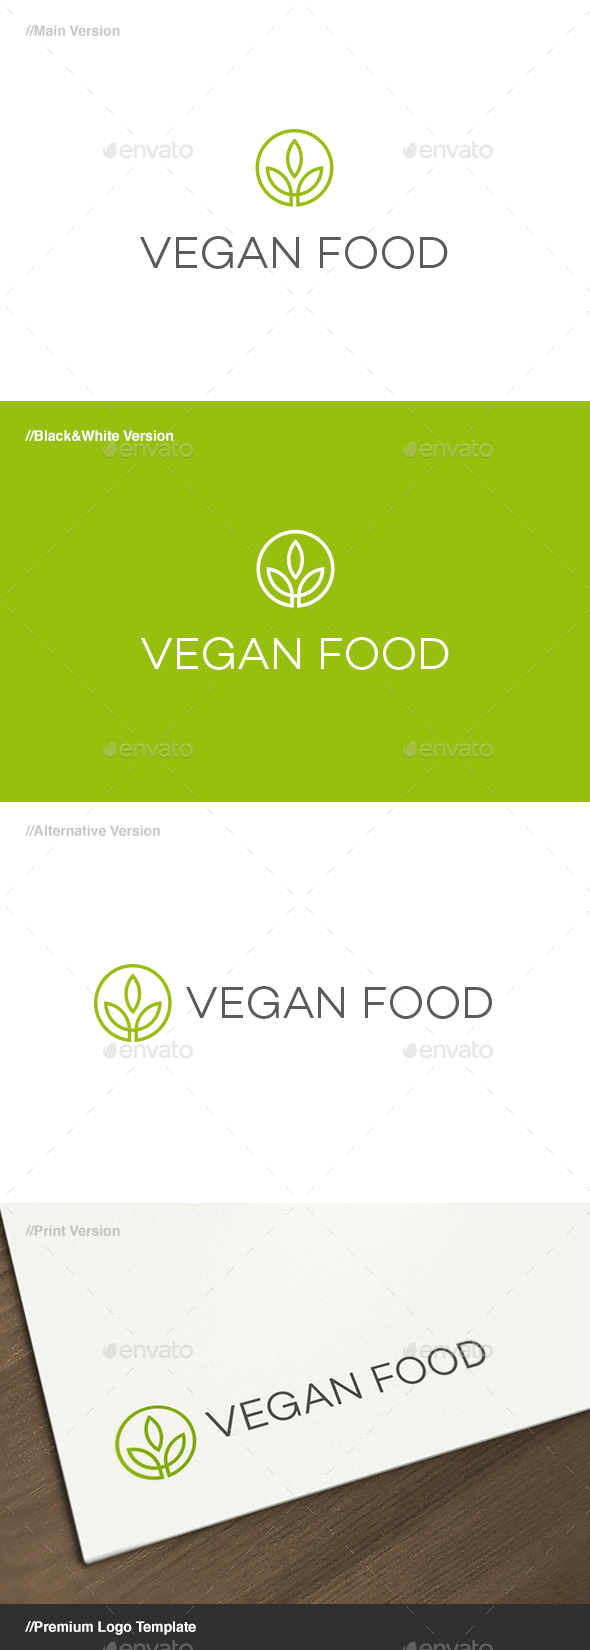 Vegan Food Herbal Symbol Logo